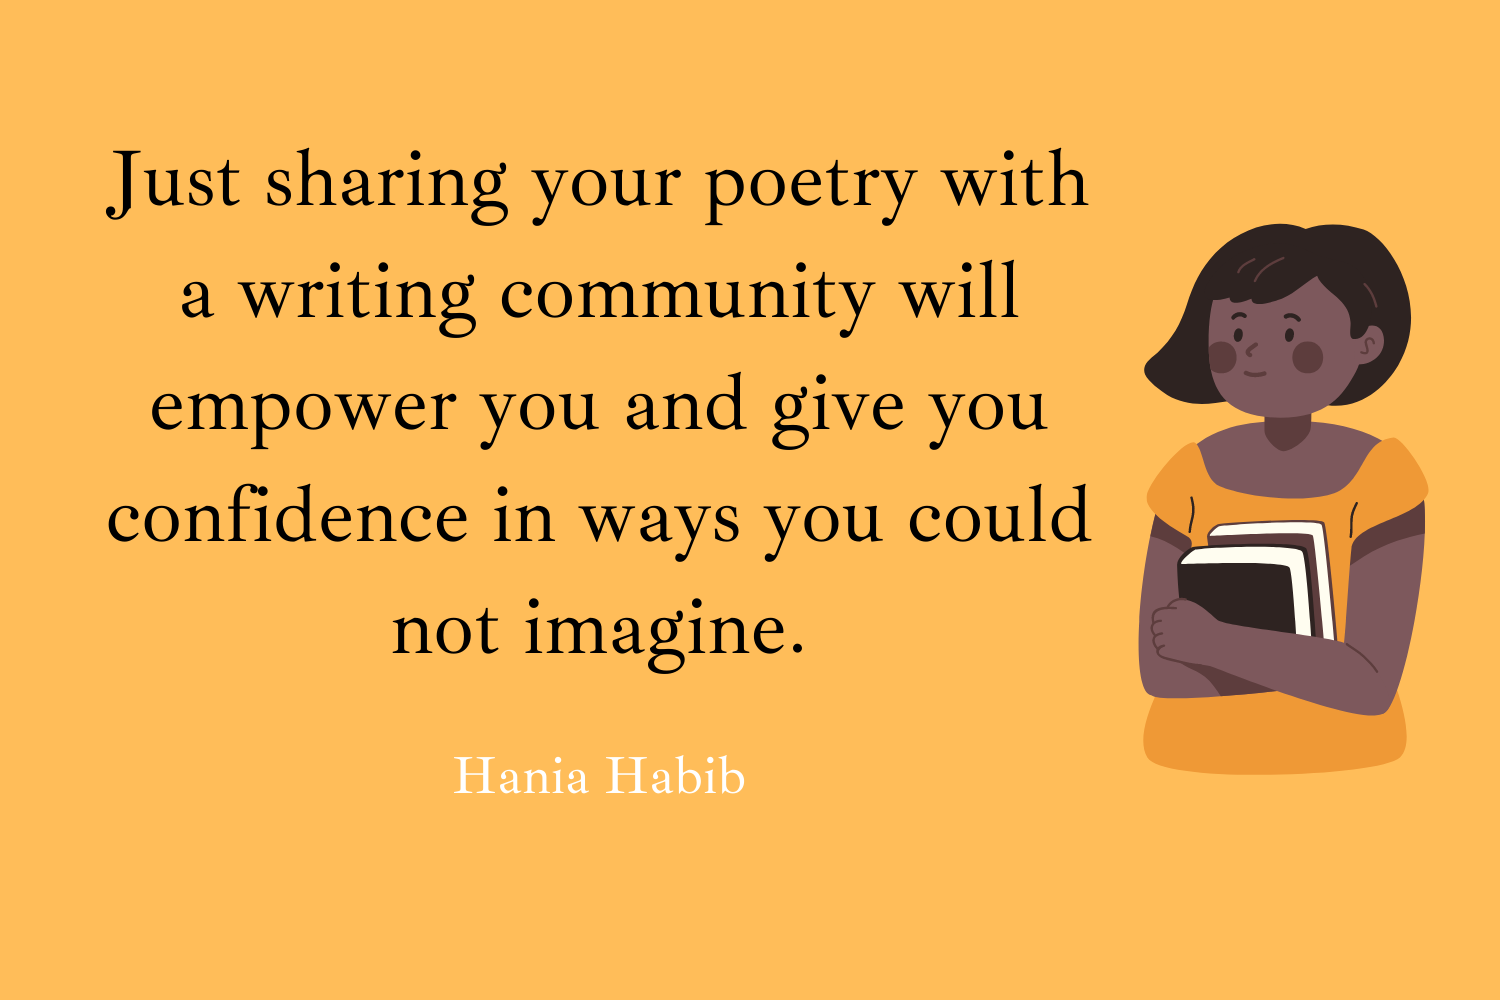 """Just sharing your poetry with a writing community will empower you and give you confidence in ways you could not imagine."""" (Hania Habib)"""